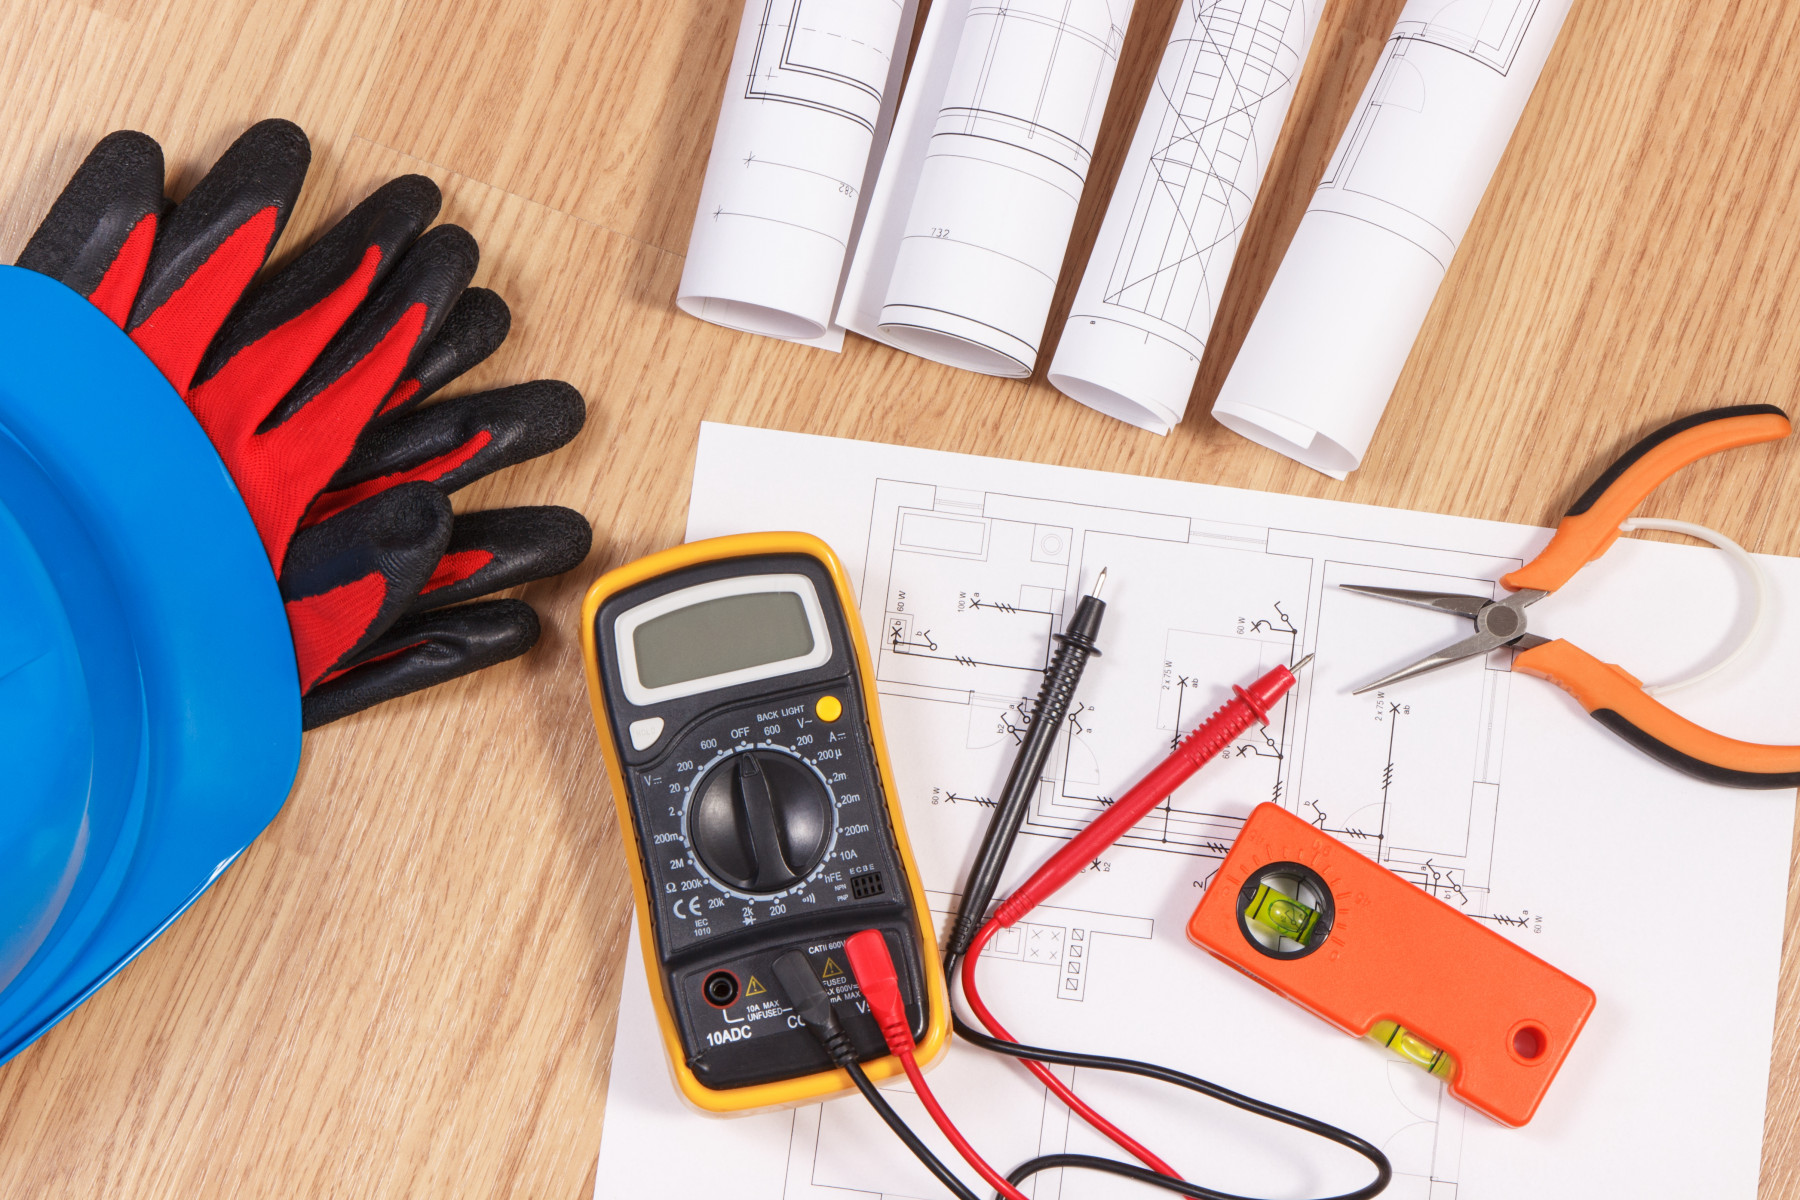 electrical safety check - Tim Kyle